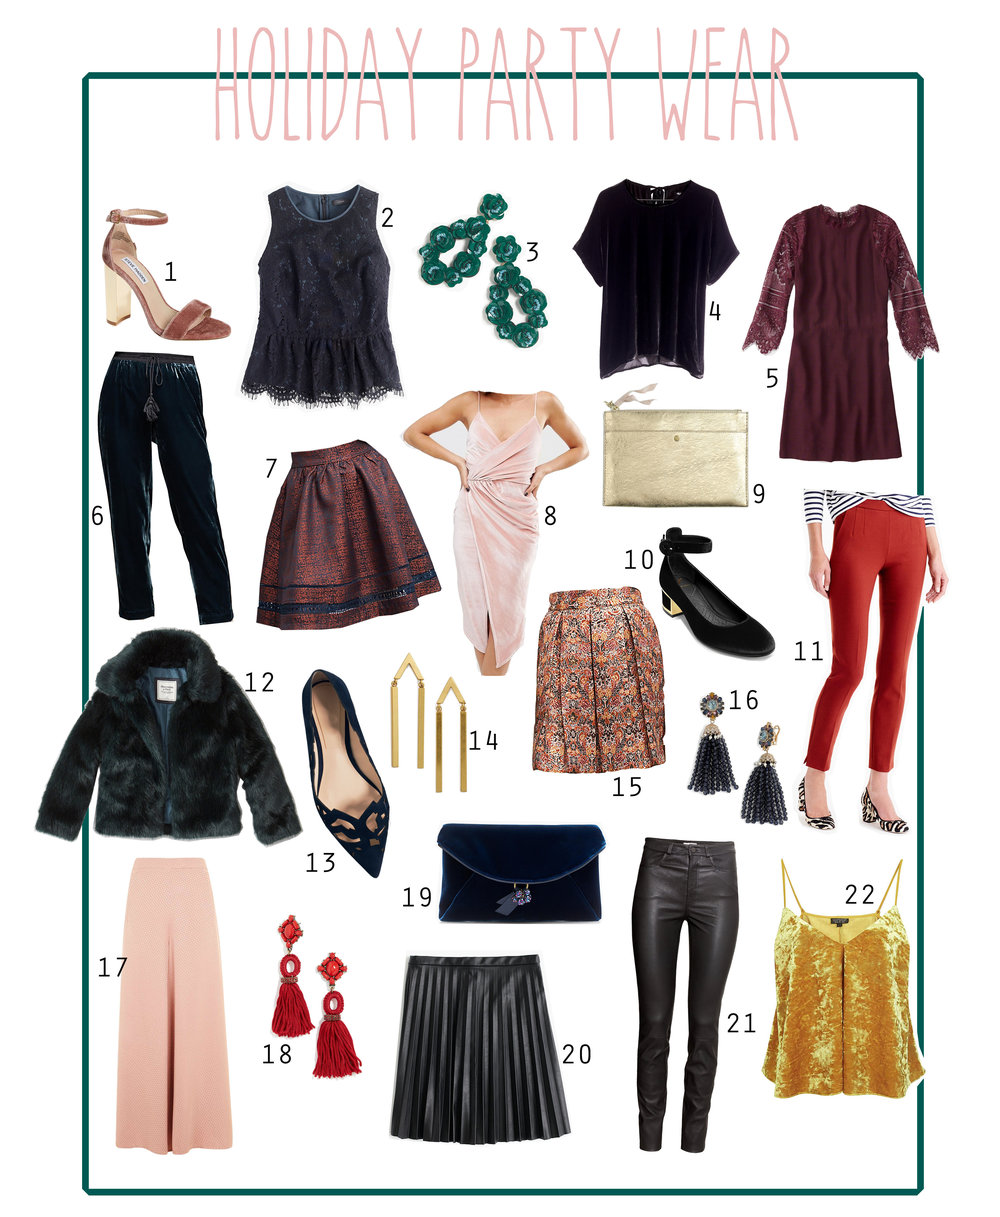 The Pastiche - Holiday party wear roundup